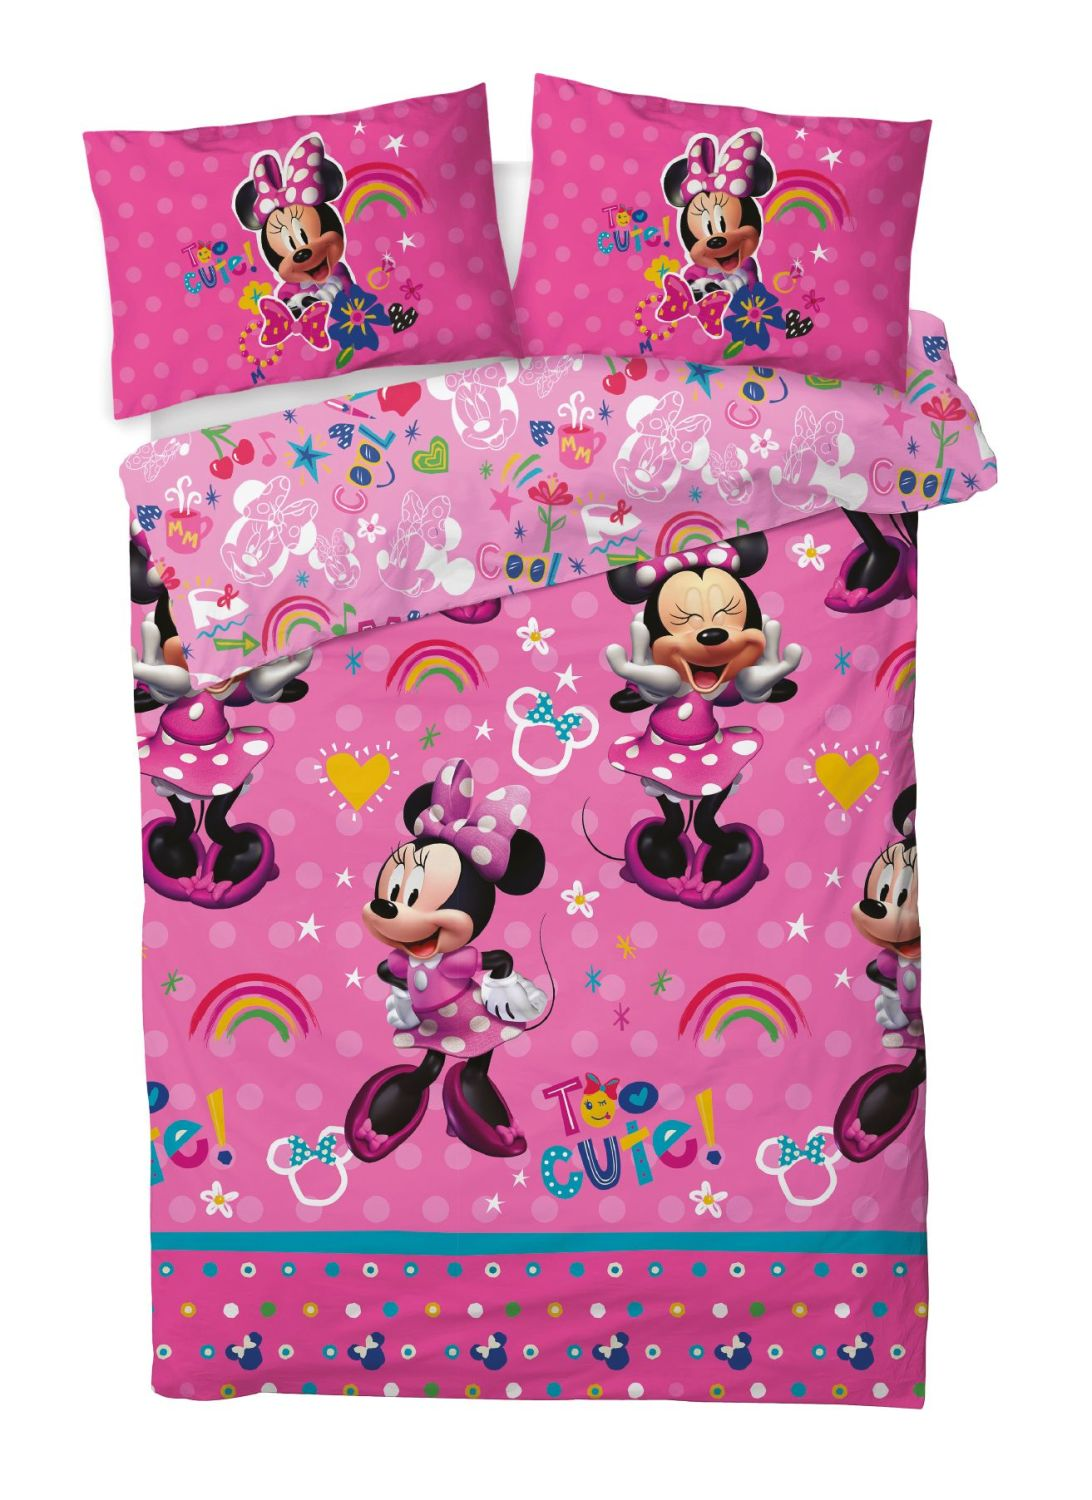 *V877, Official Minnie Mouse